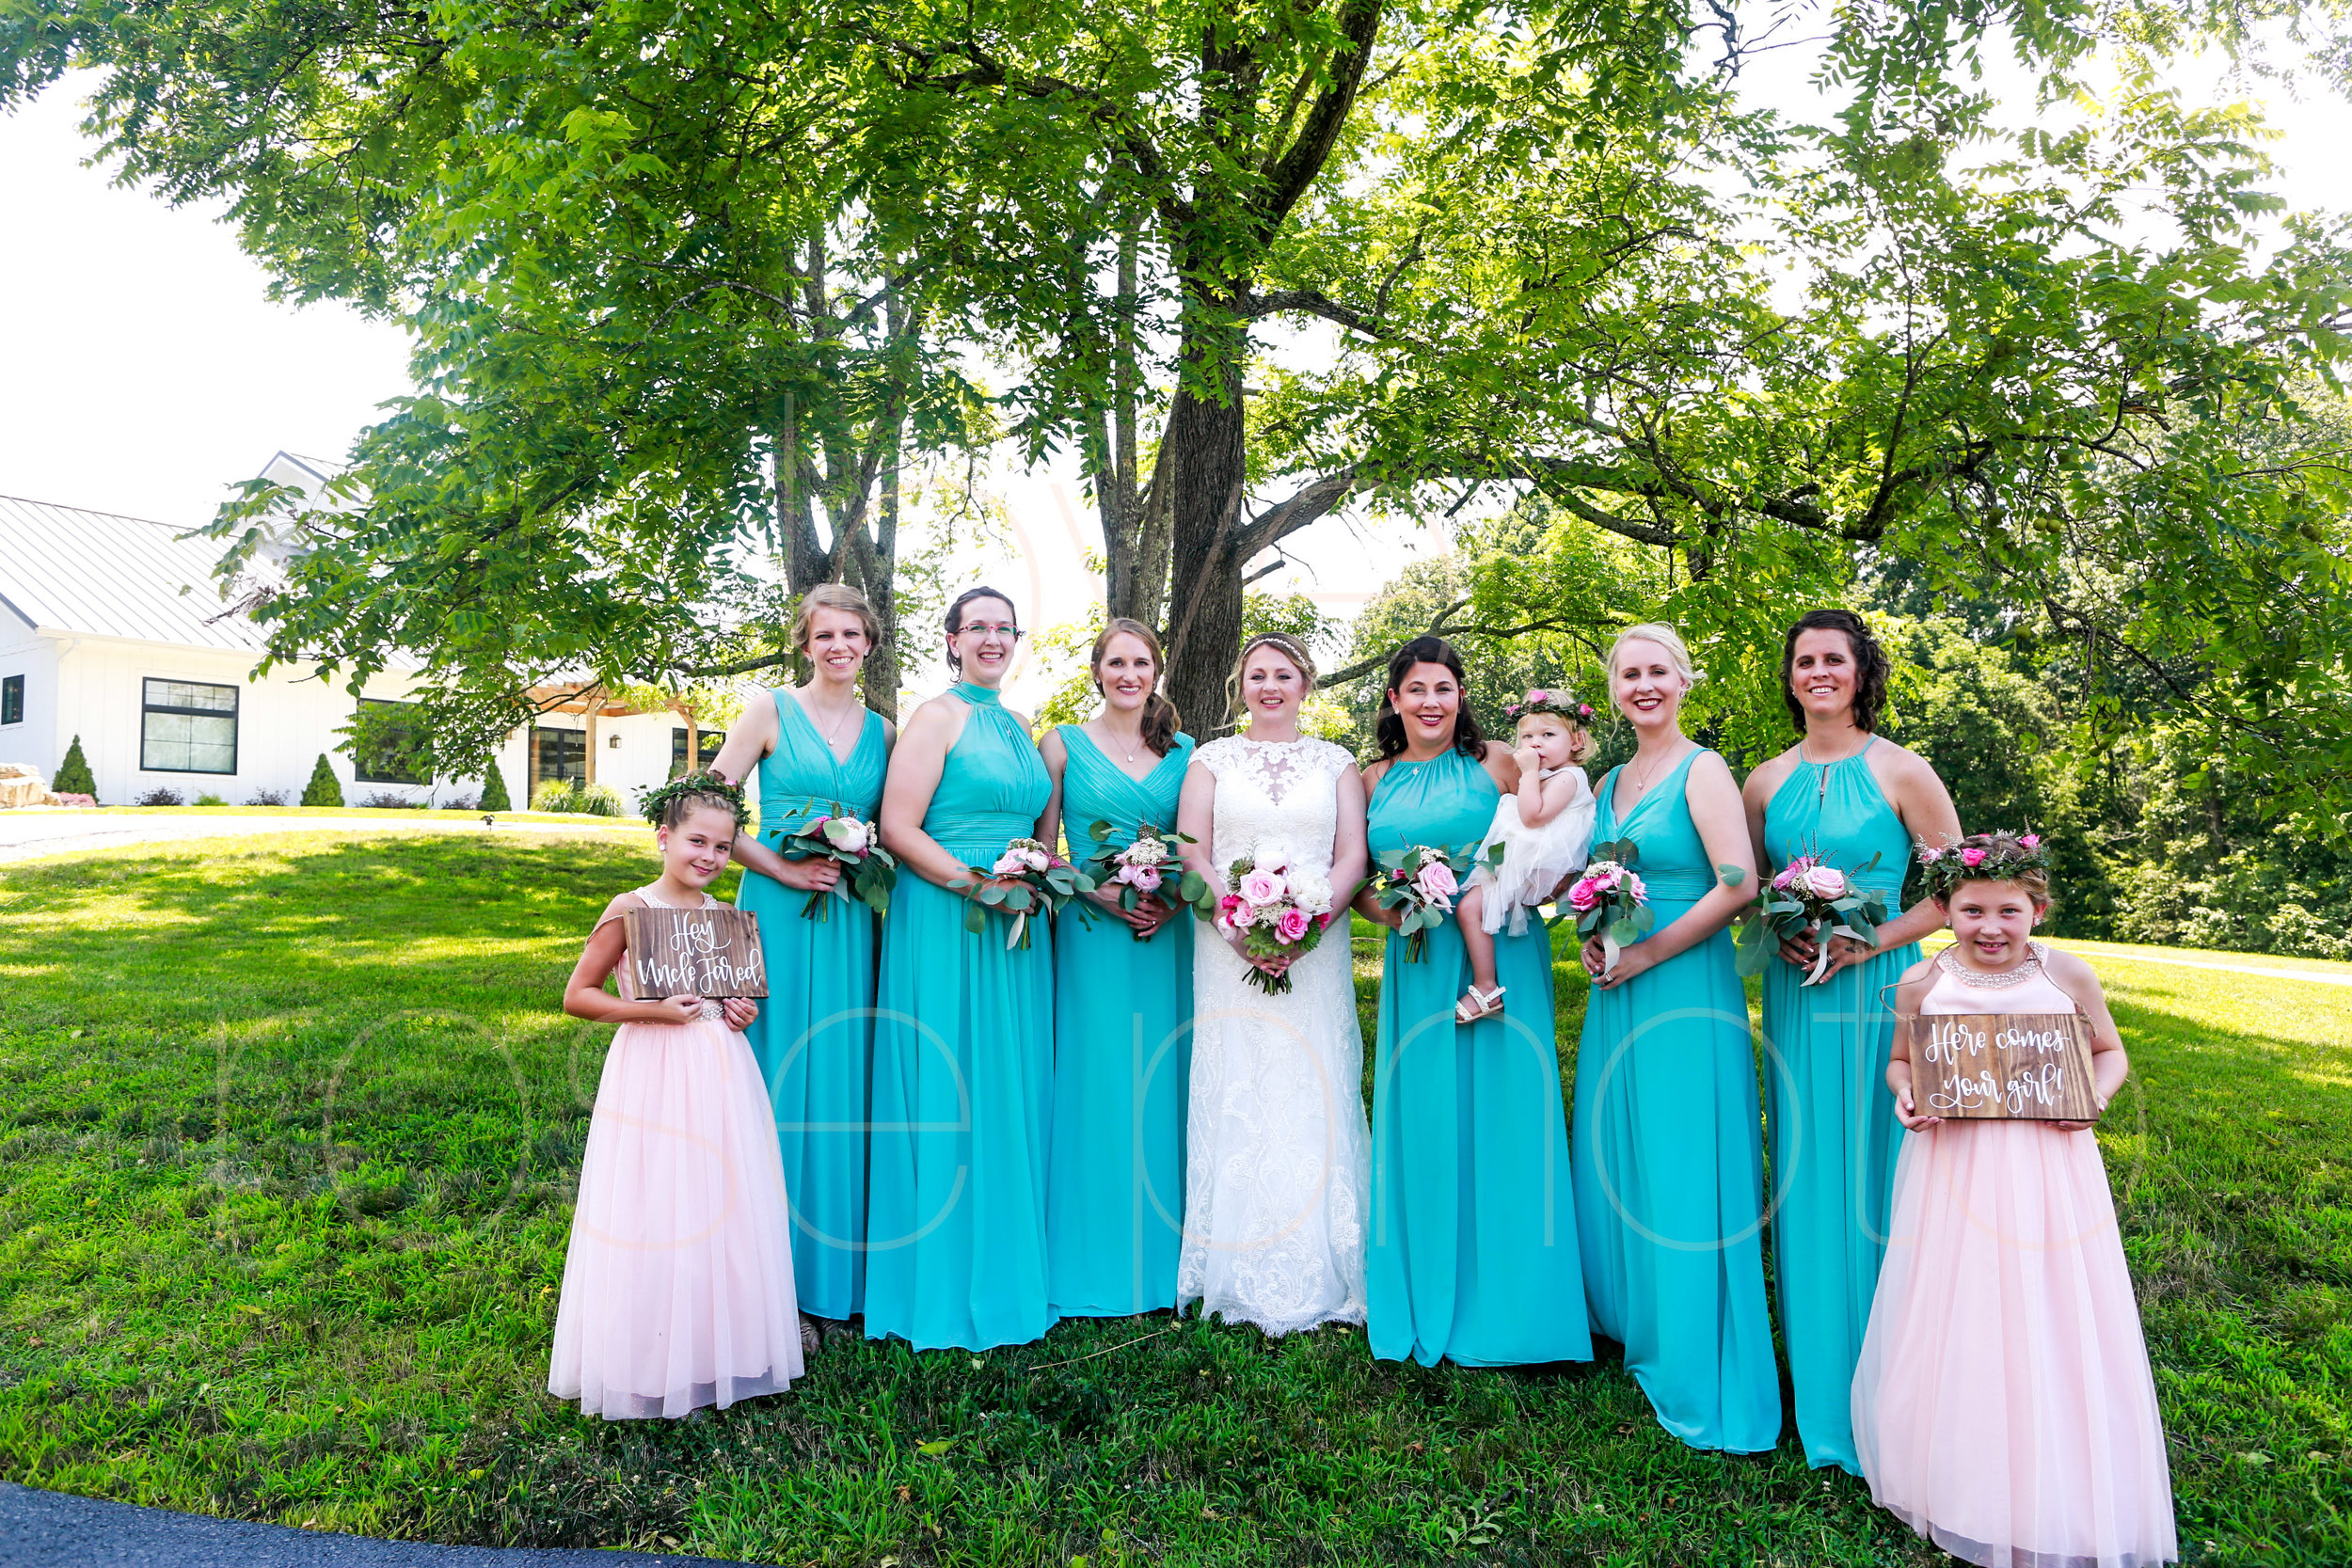 E + J Bloomington at The Wilds wedding photography pink roses blush baby blue bridesmaids dress flower girl destination photo -51.jpg